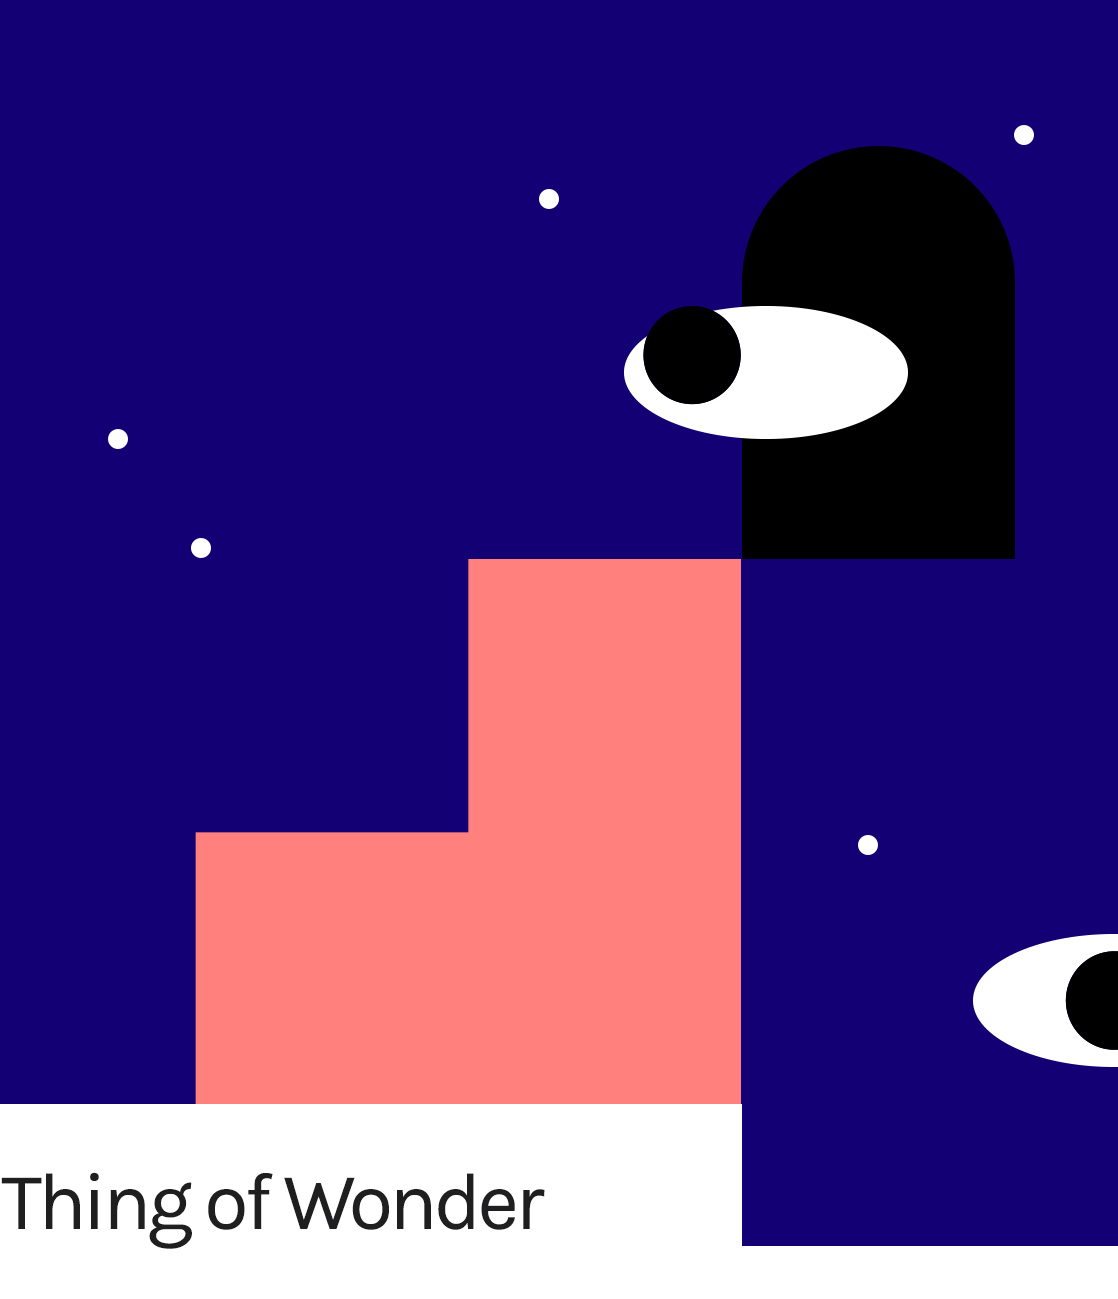 THING OF WONDER-3